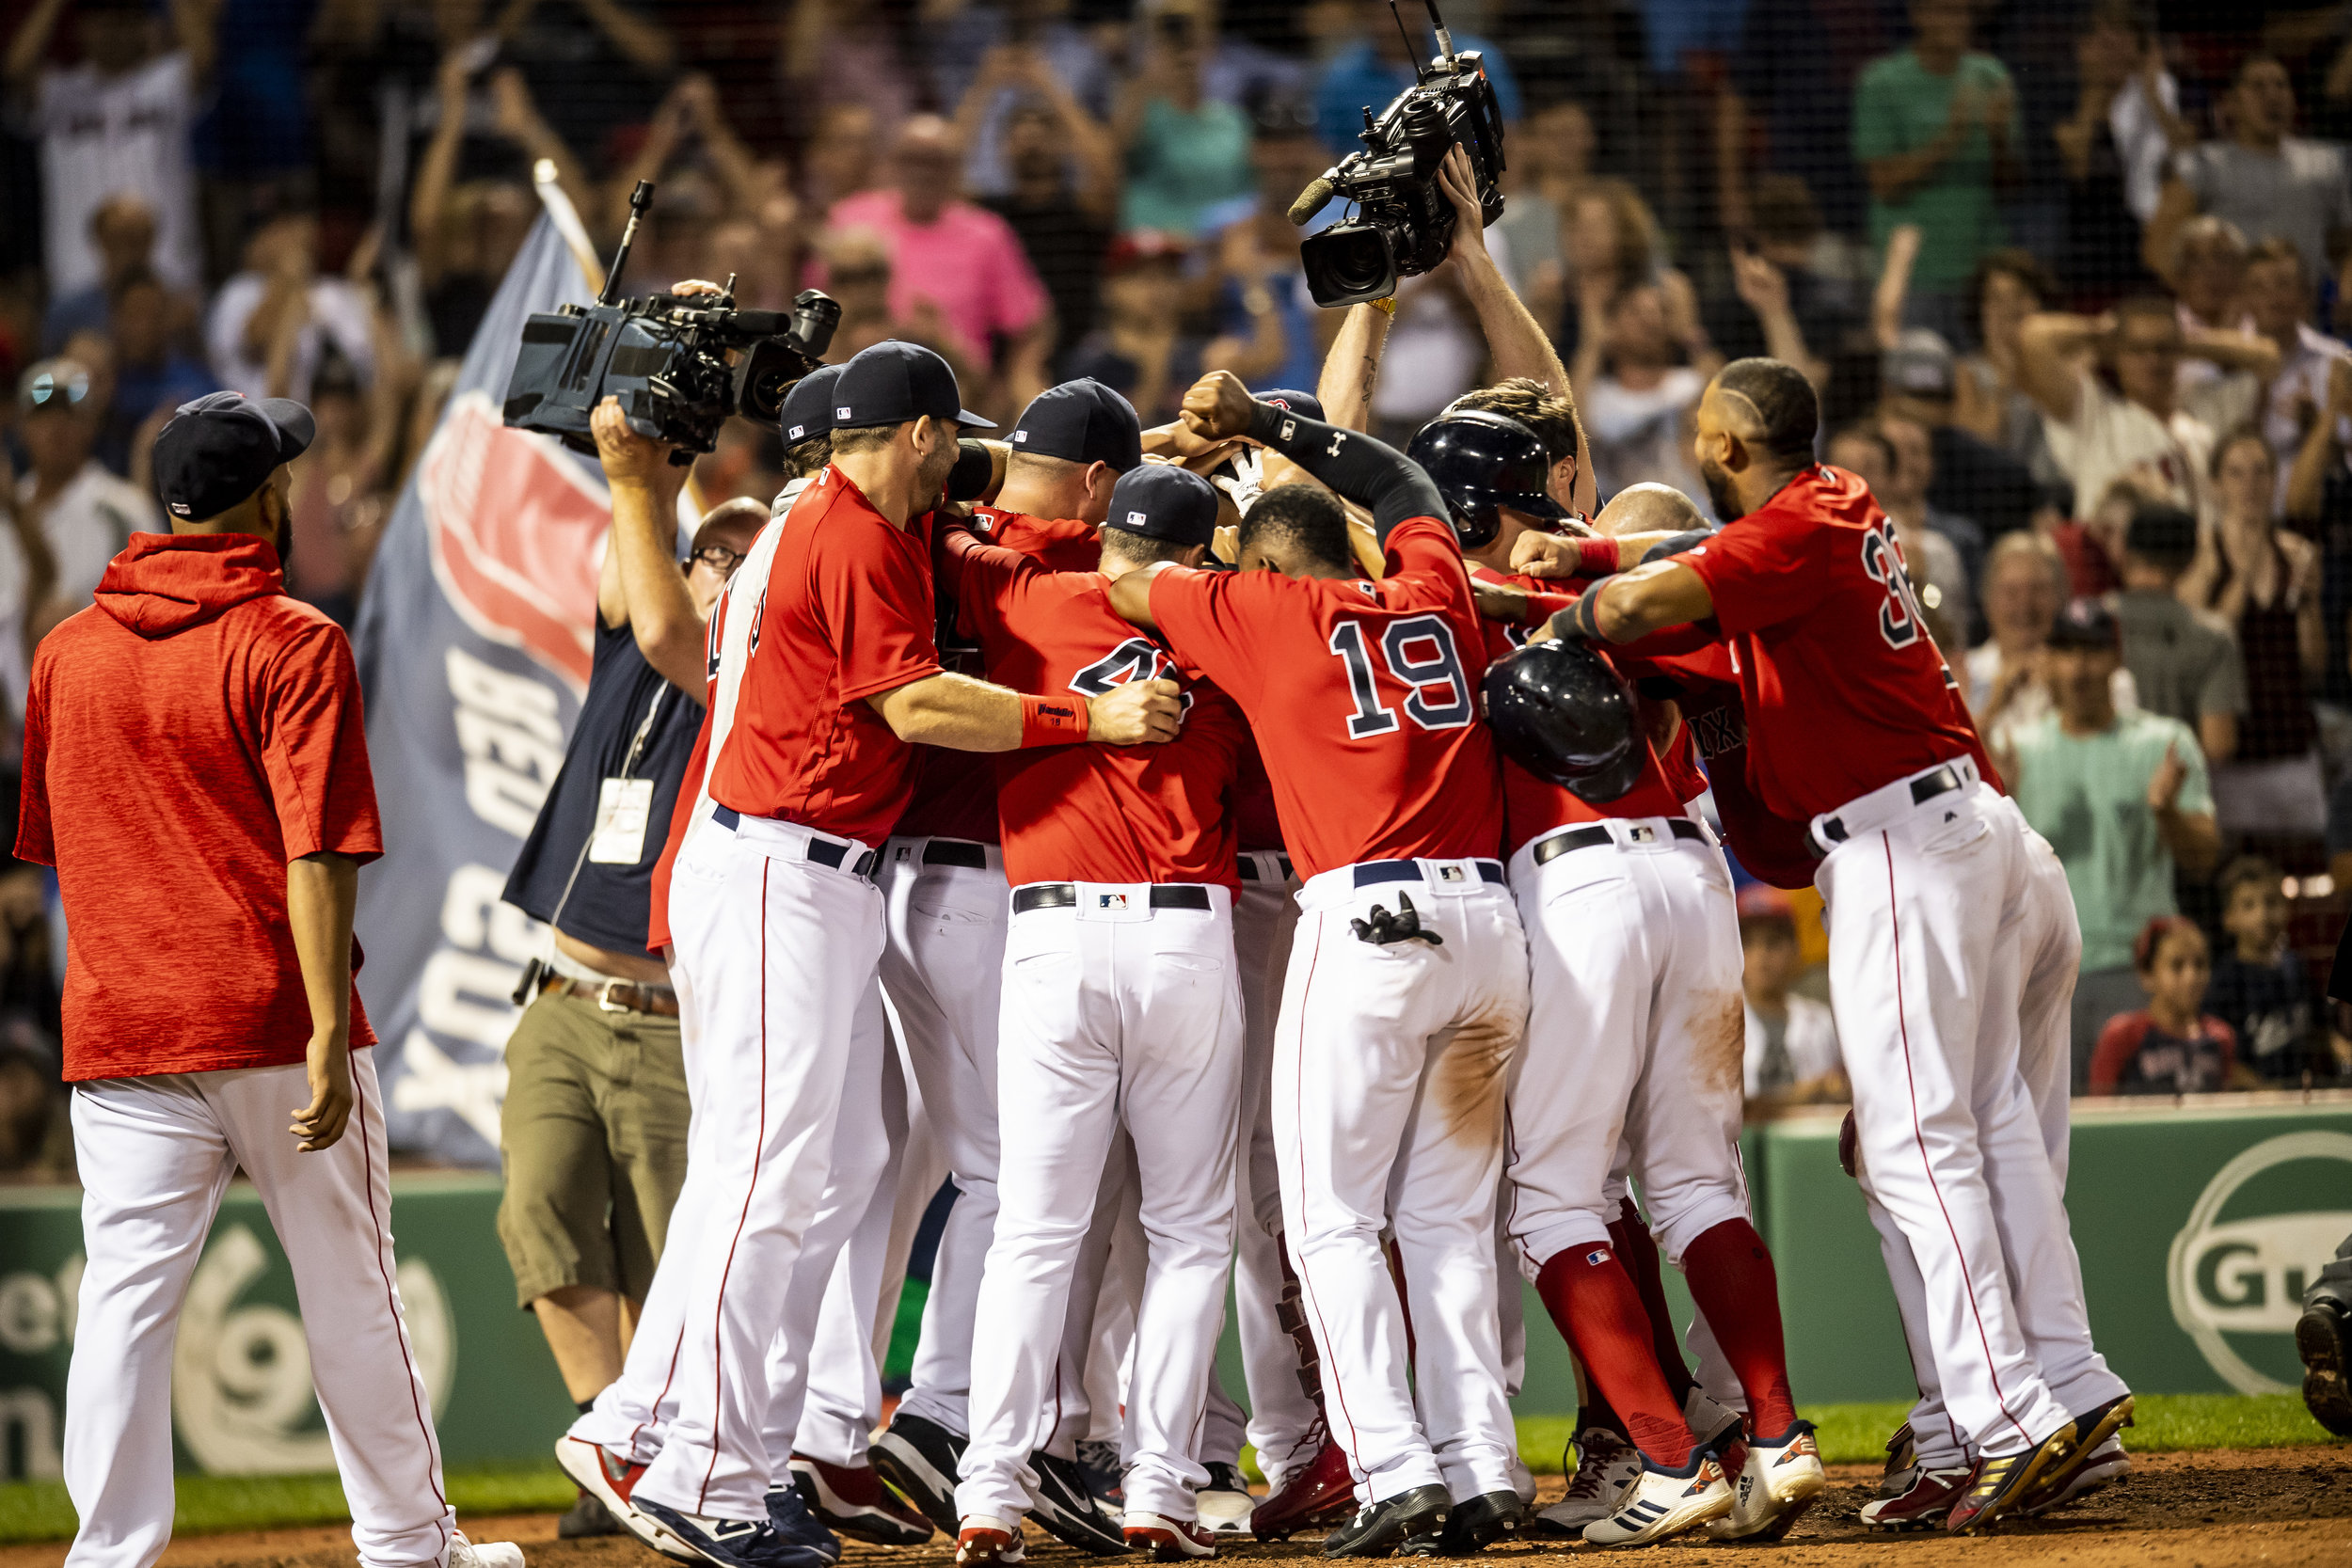 July 26, 2018, Boston, MA: The Red Sox react to Boston Red Sox outfielder Mookie Betts hits the walk-off home run as the Boston Red Sox defeated the Minnesota Twins at Fenway Park in Boston, Massachusetts on Friday, July 27, 2018. (Photo by Matthew Thomas/Boston Red Sox)